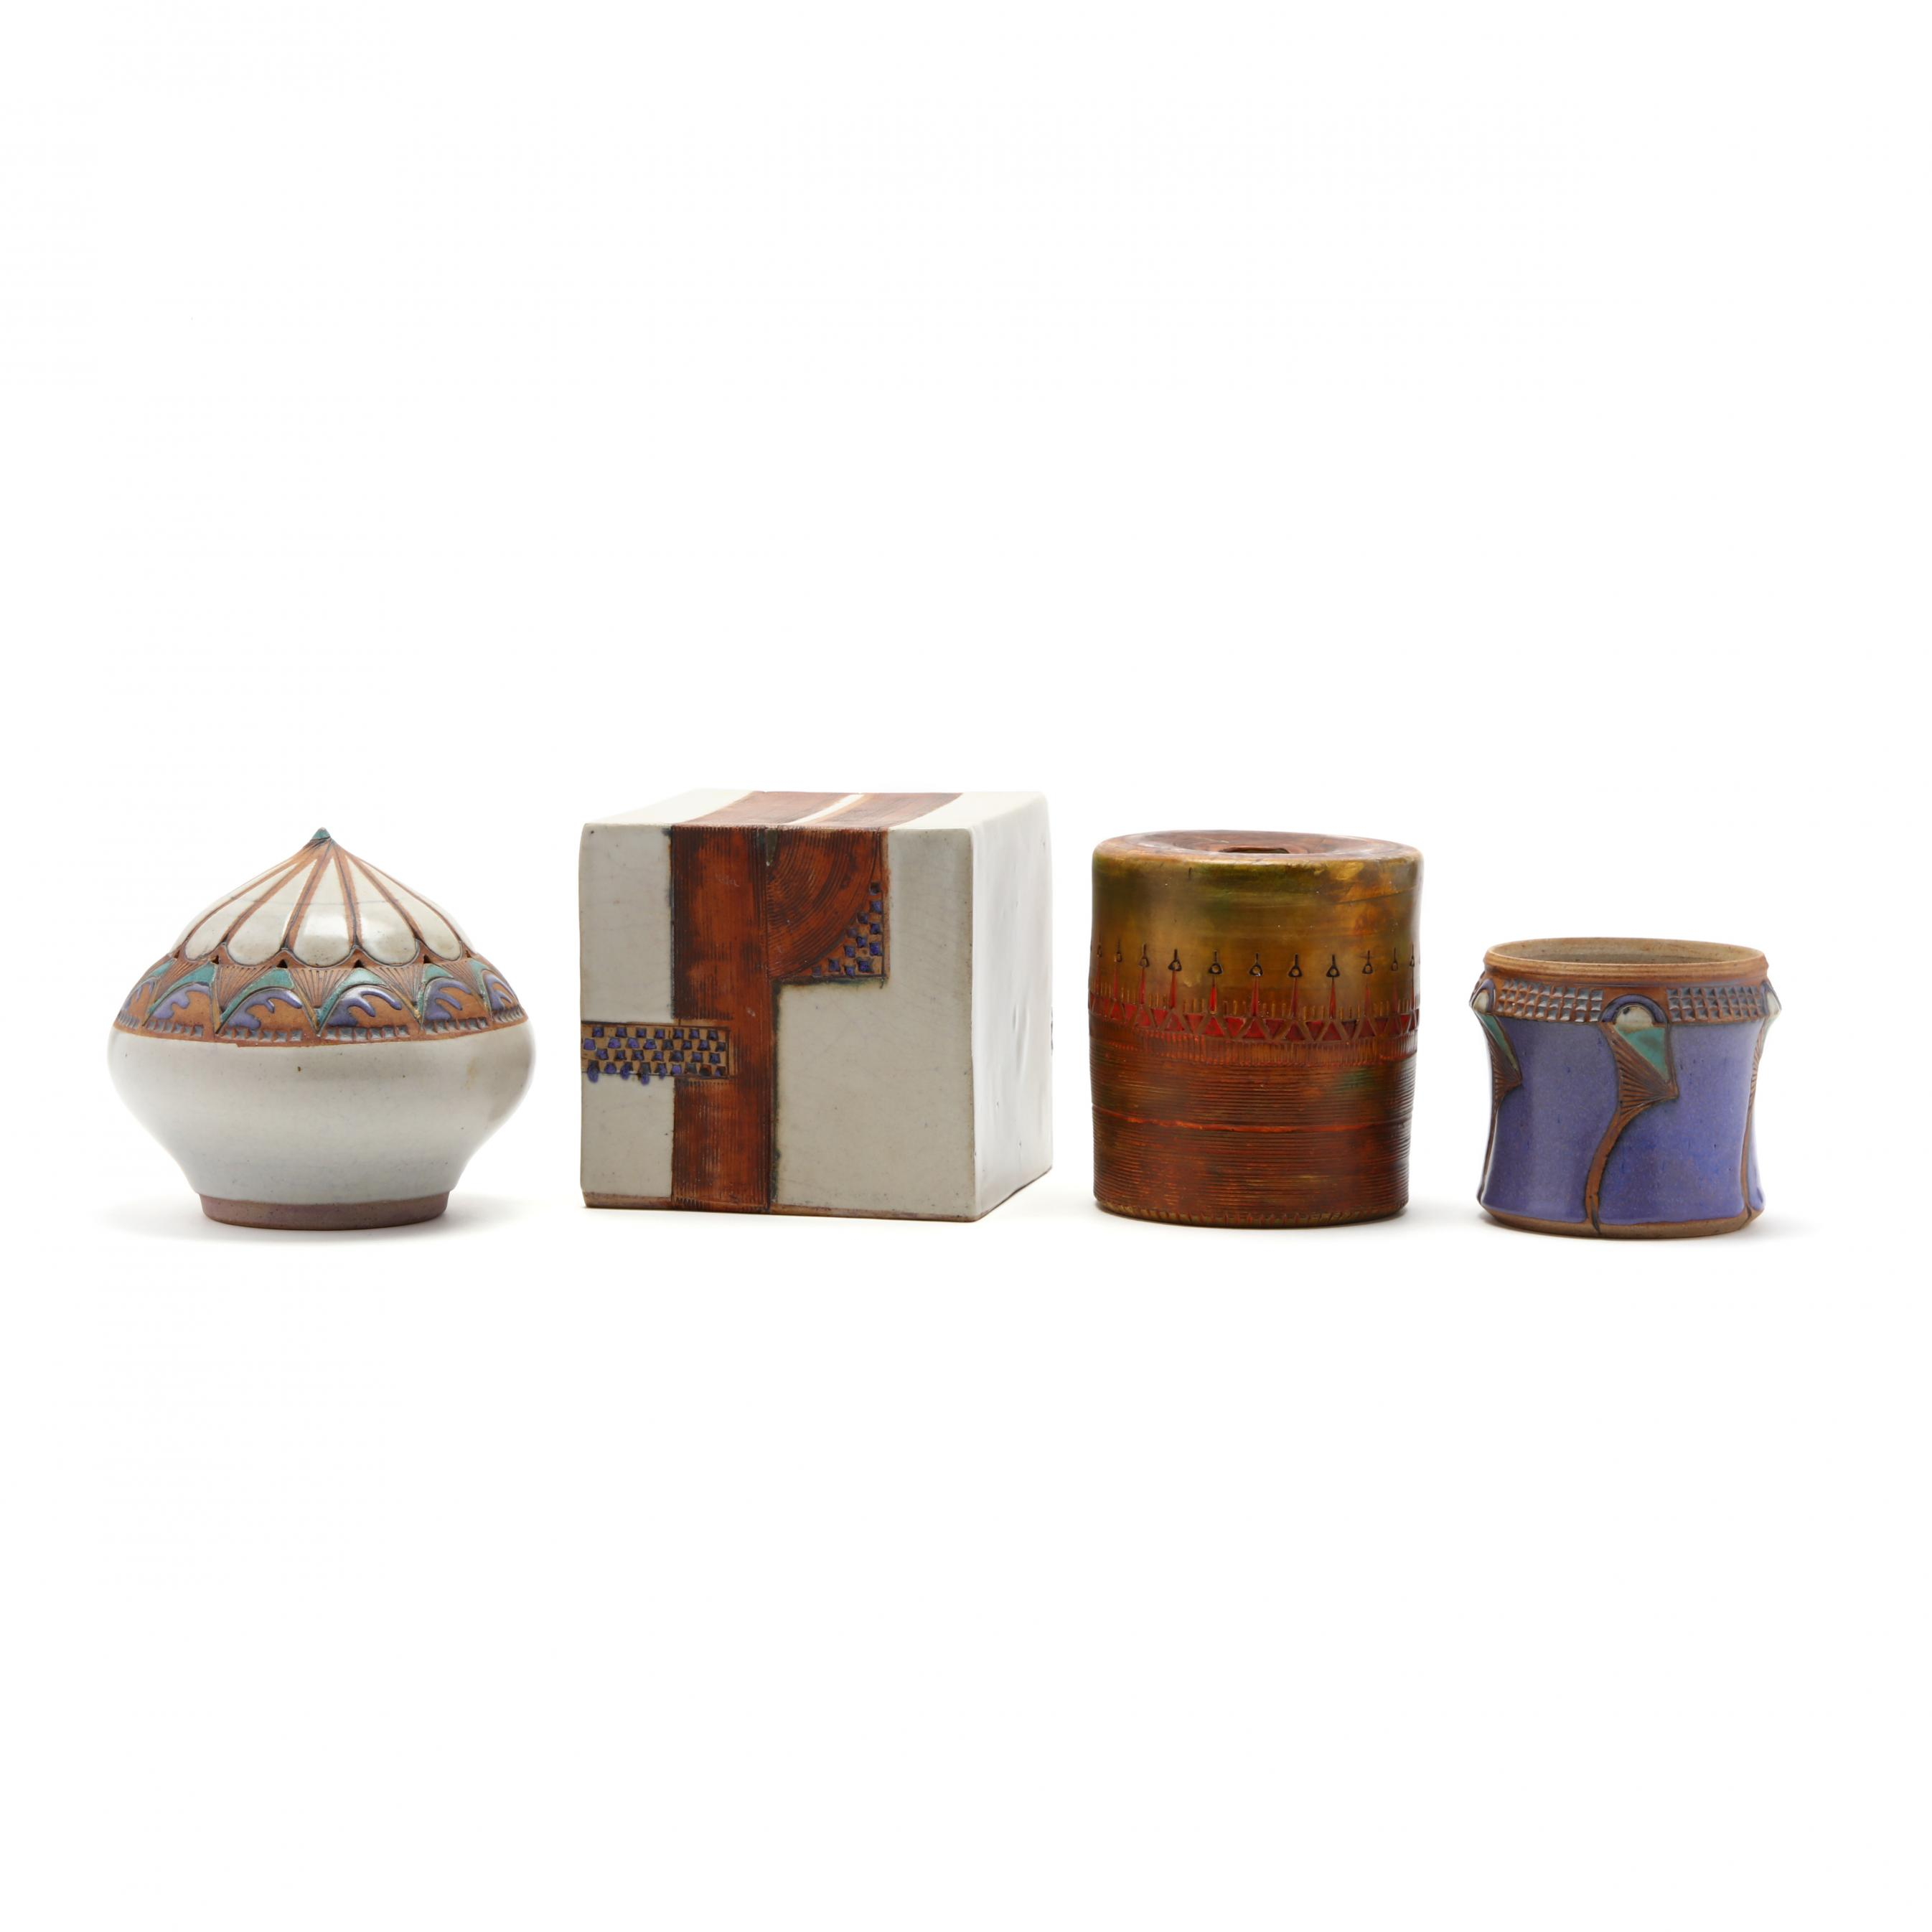 elaine-reed-nc-a-group-of-four-porcelain-art-pottery